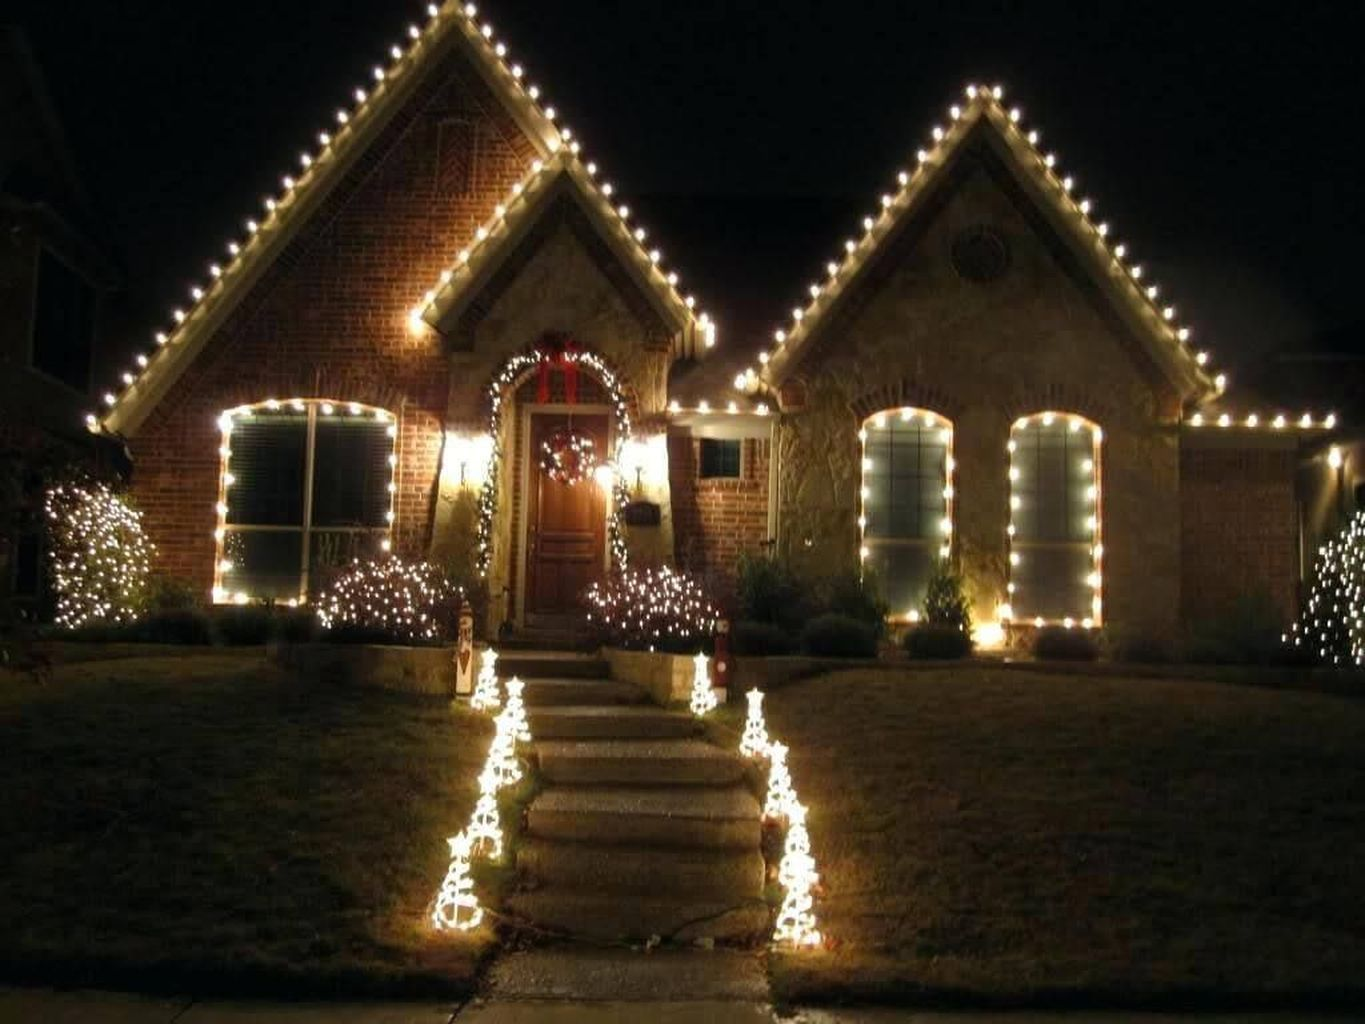 26 Easy DIY Christmas Decorations Ideas for Your Front Yard | Classy  christmas decor, Outdoor holiday decor, Diy christmas decorations easy